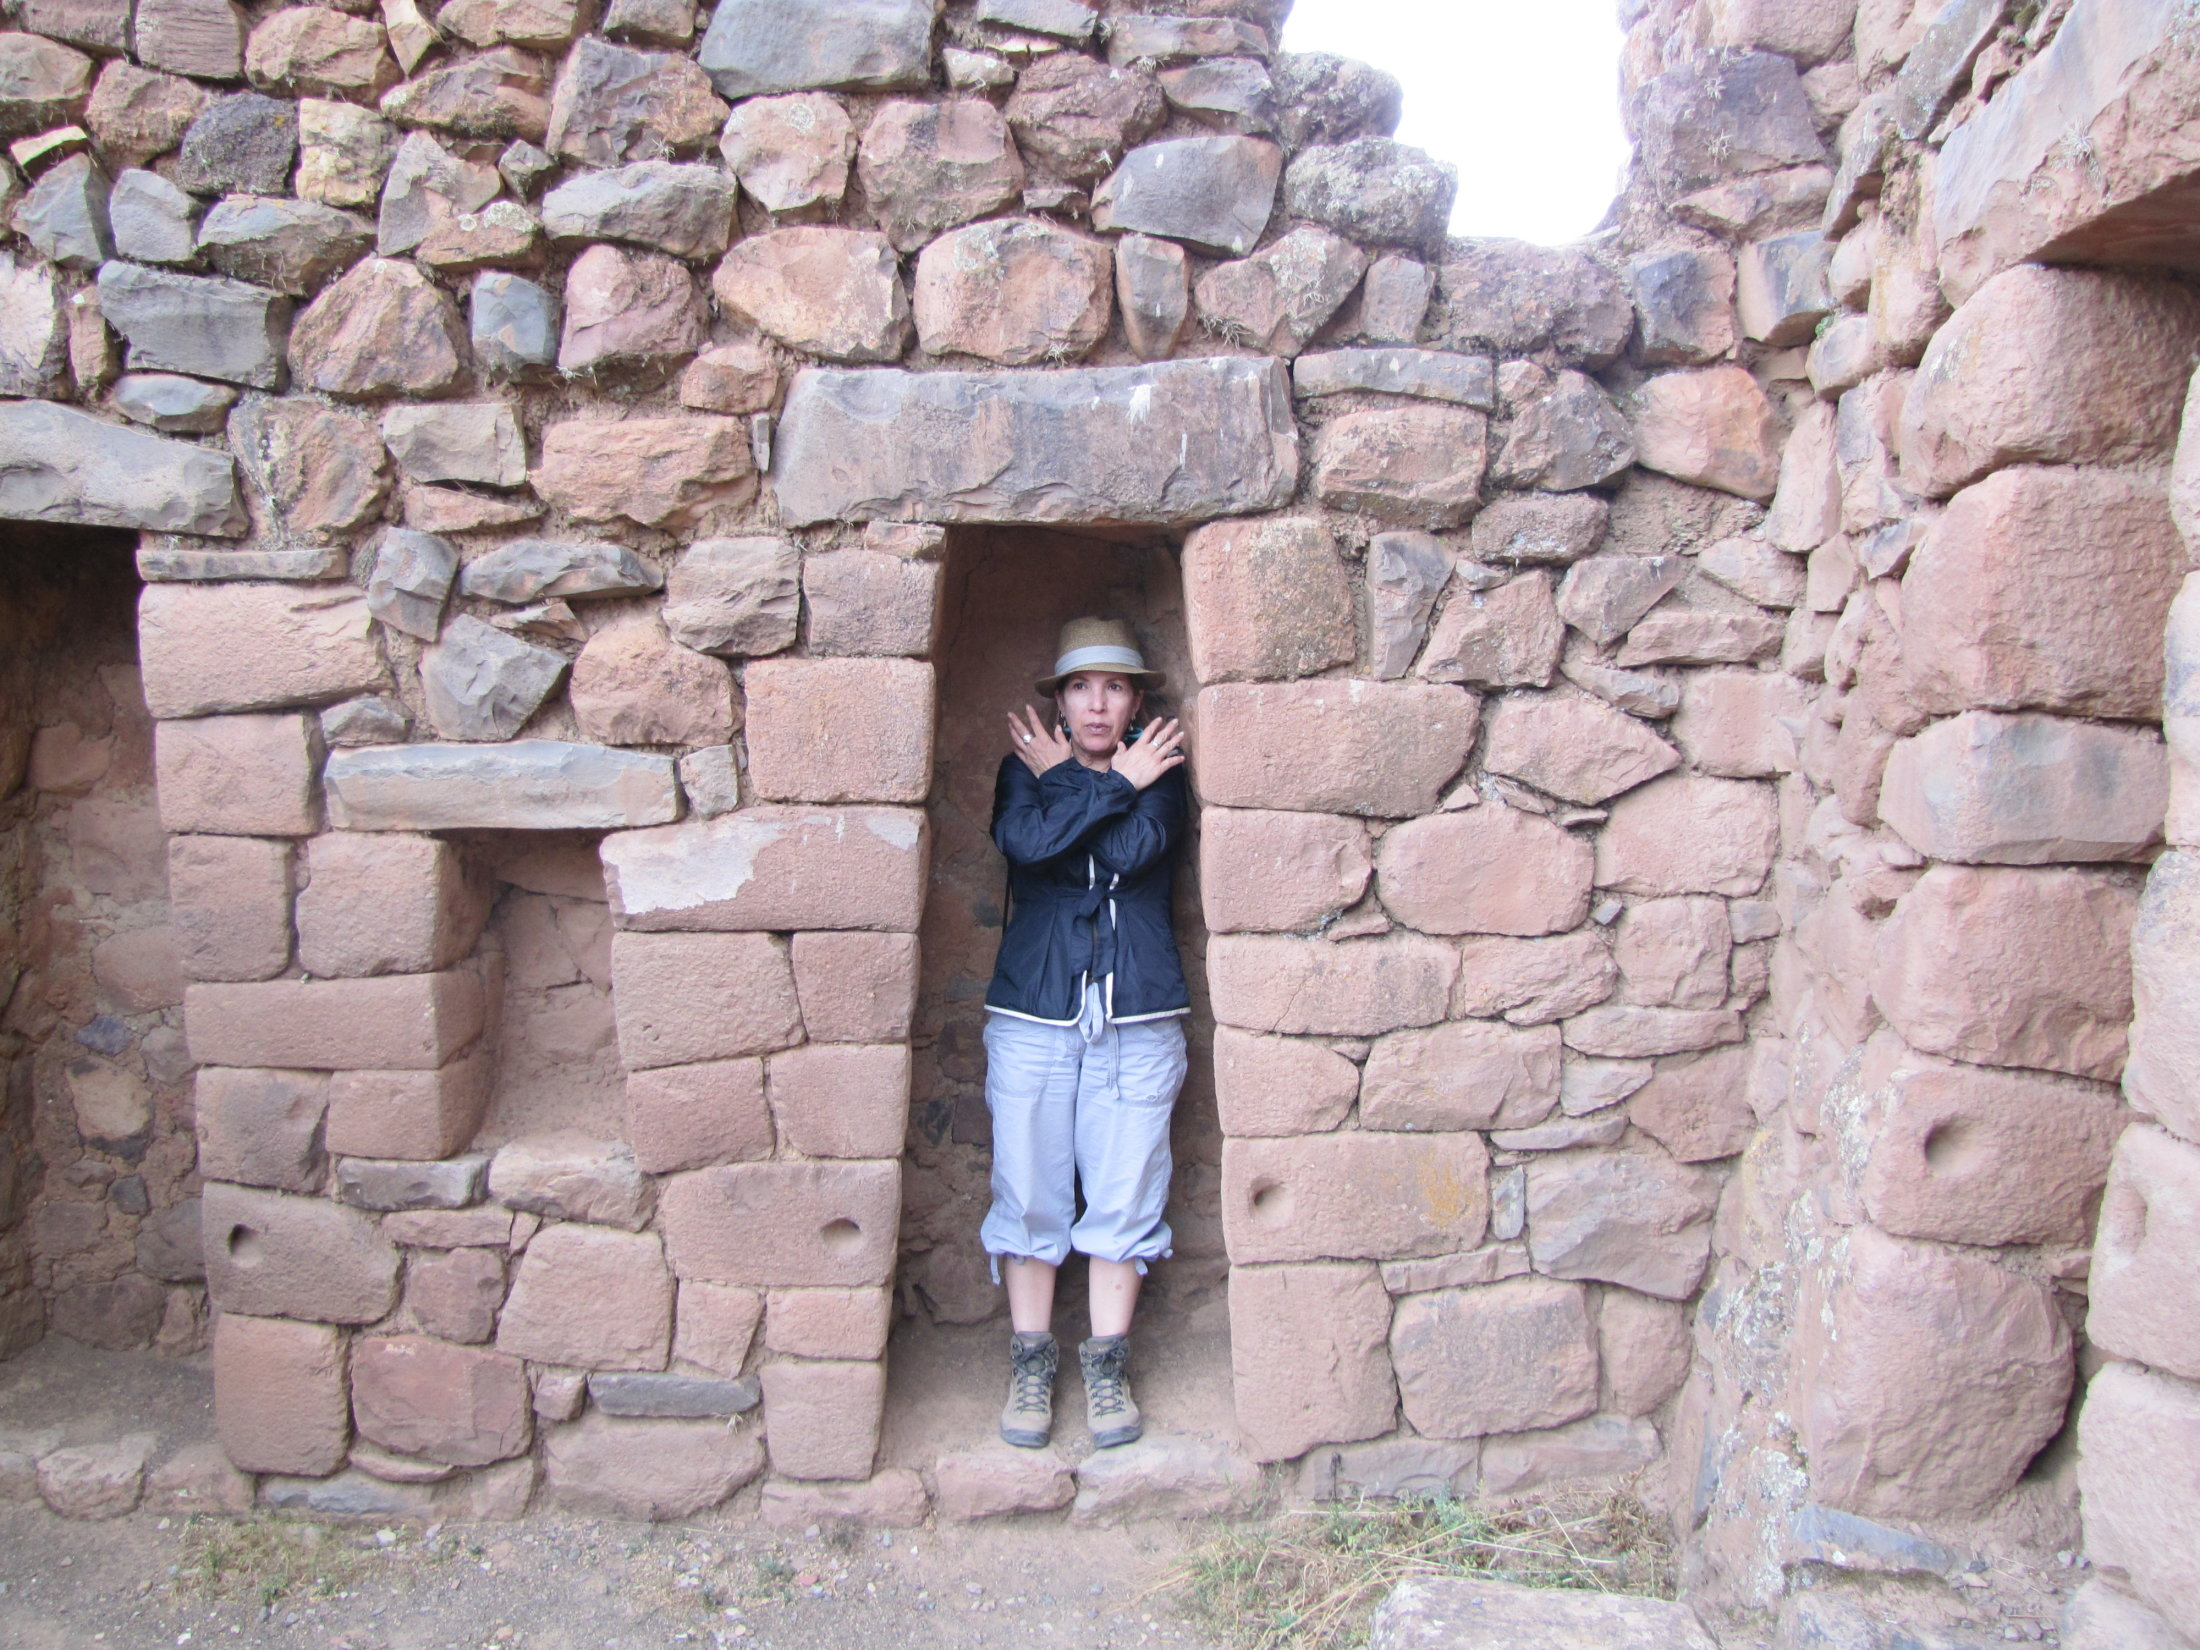 Betty the mummy at Pisac ruins